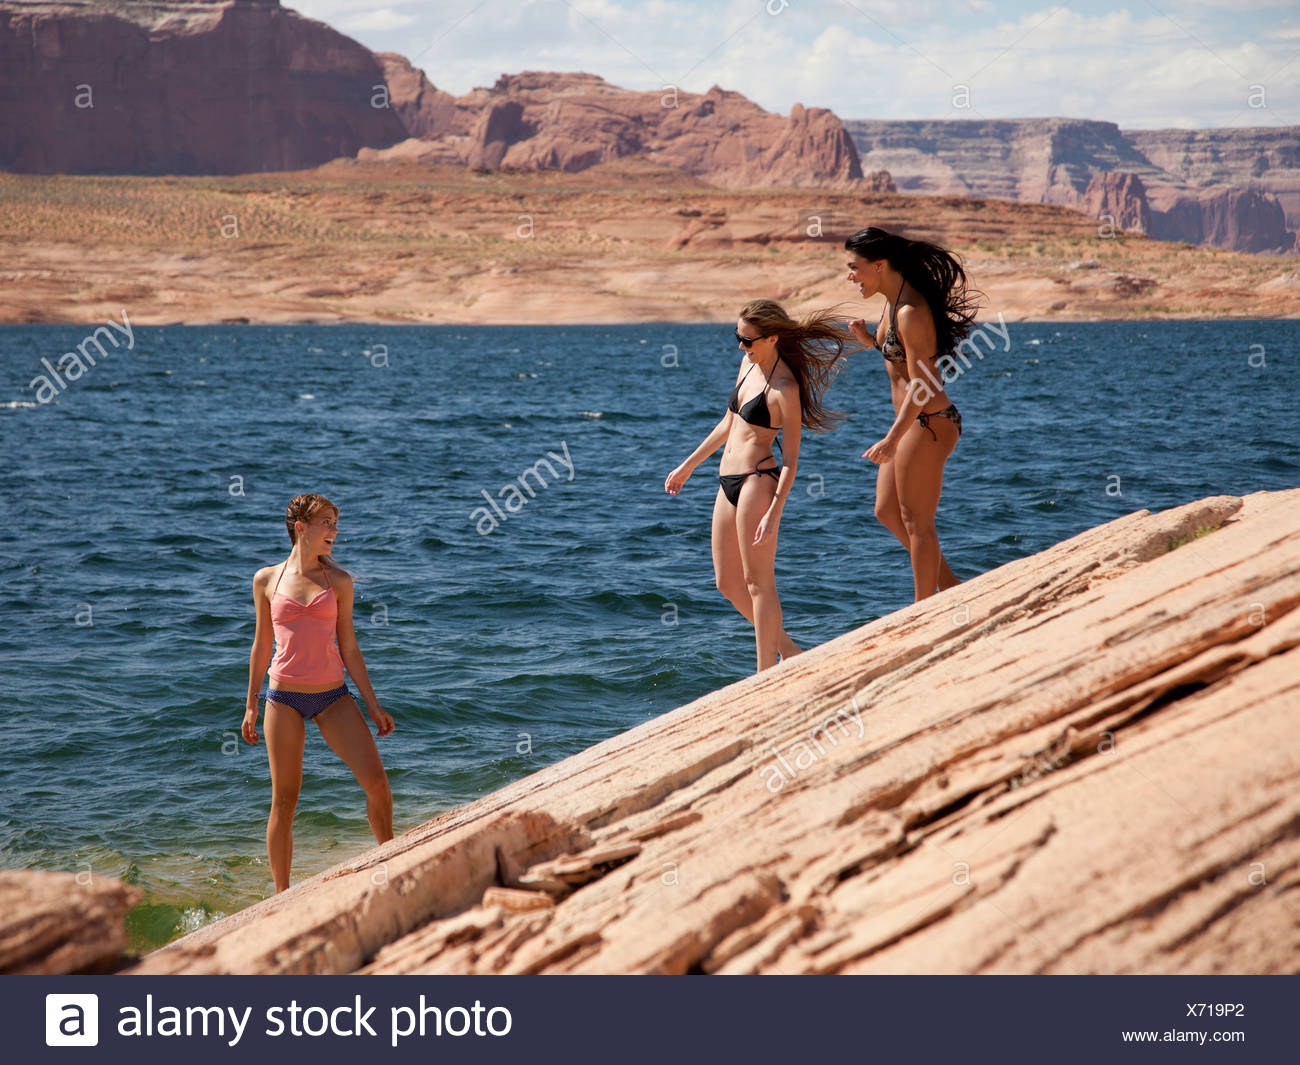 bikini lake powell